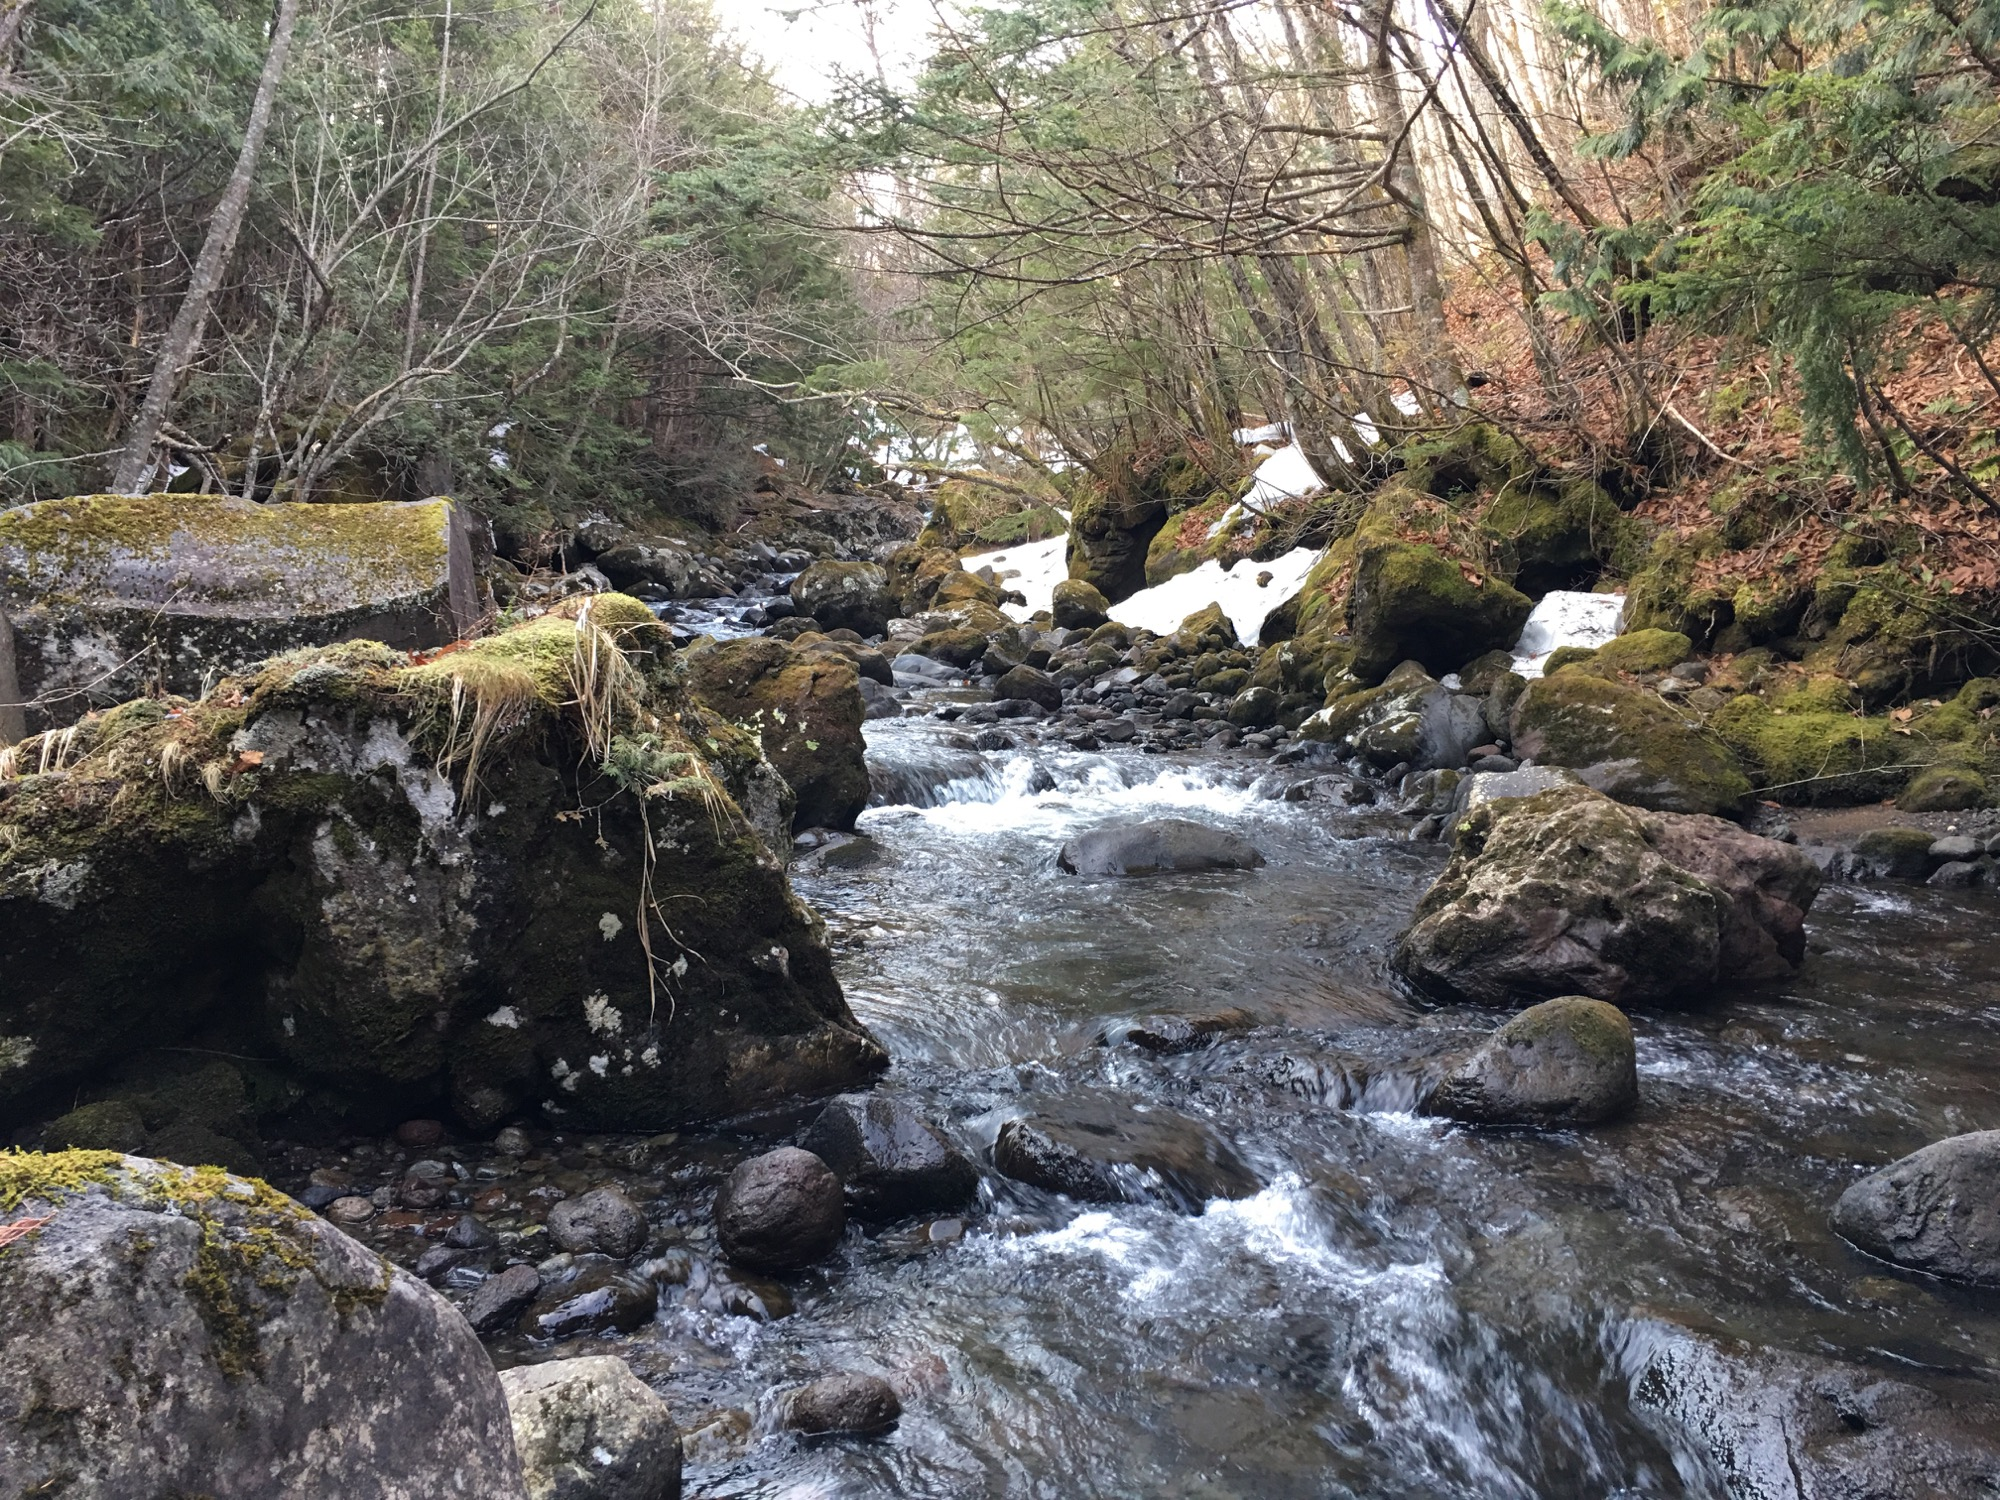 Moss covered boulders next to a snow melt gorged brook